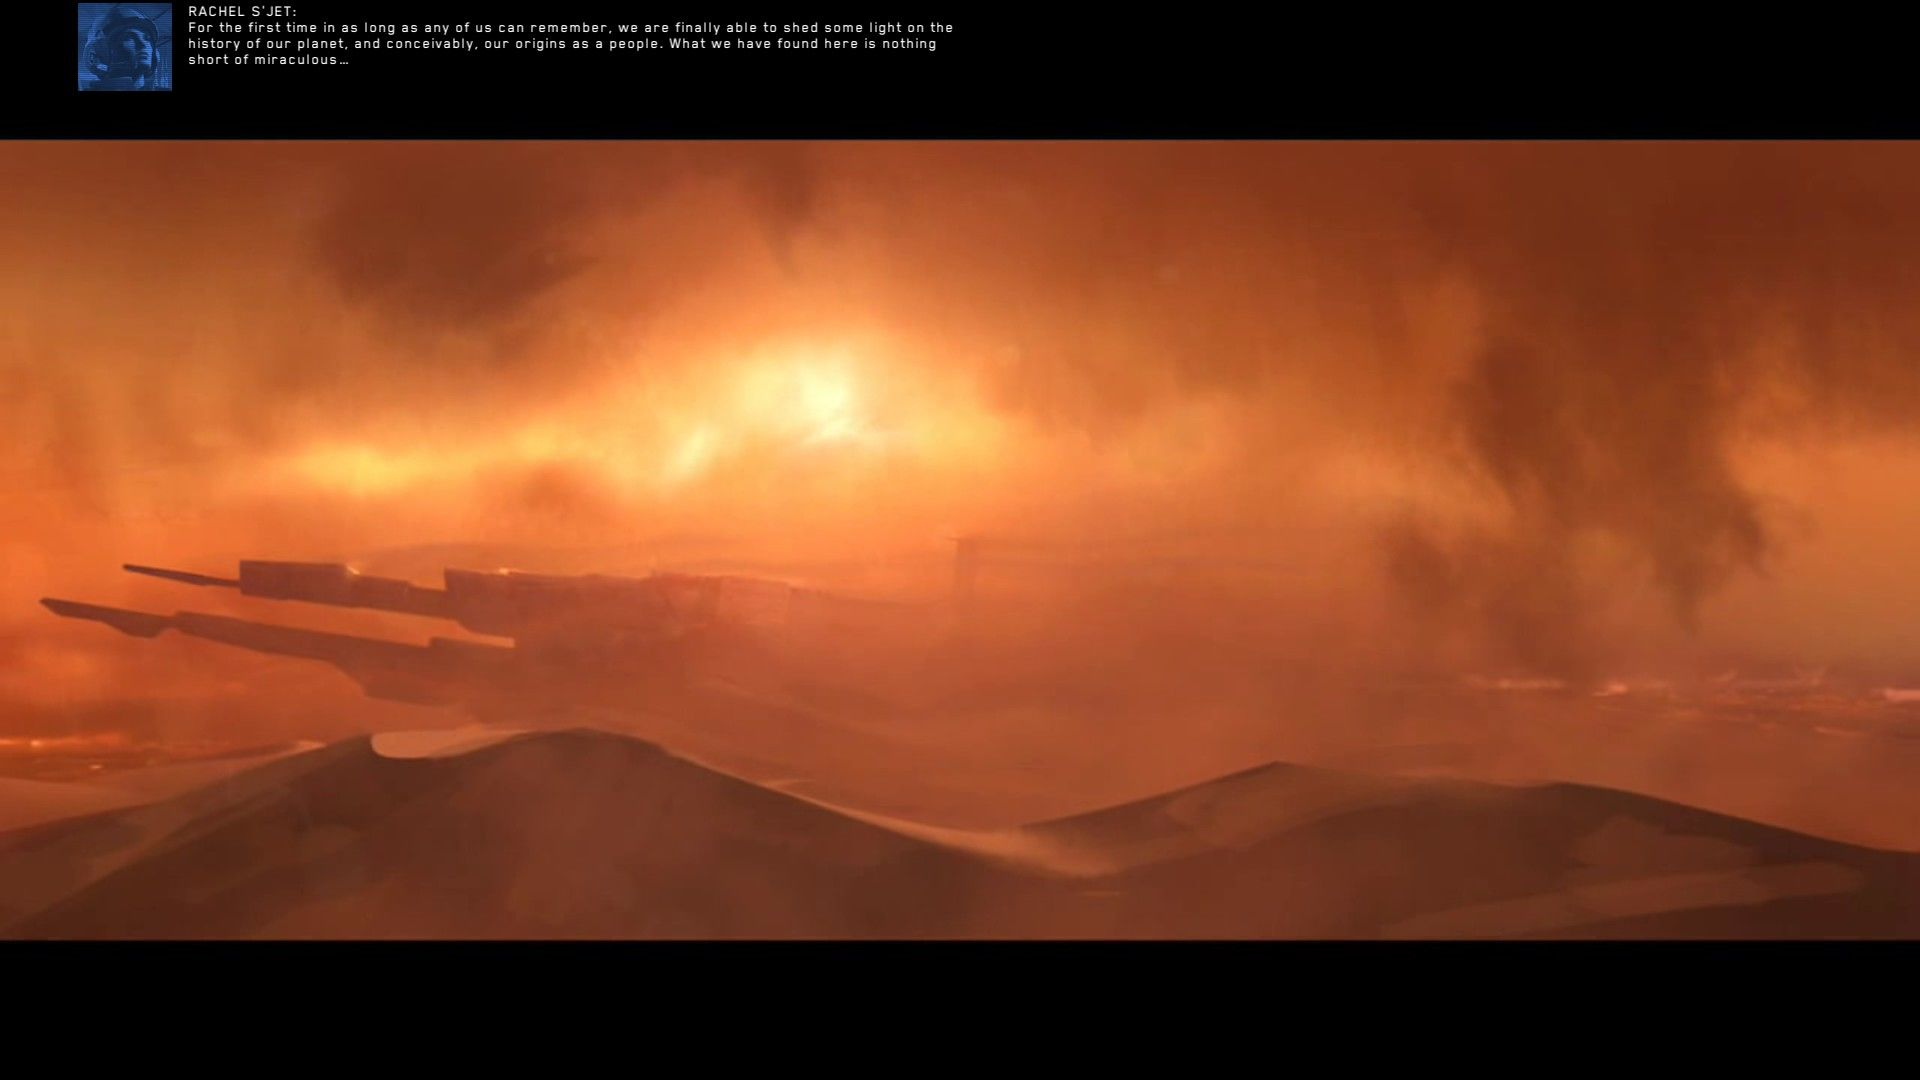 Homeworld: Deserts of Kharak Windows sand storm